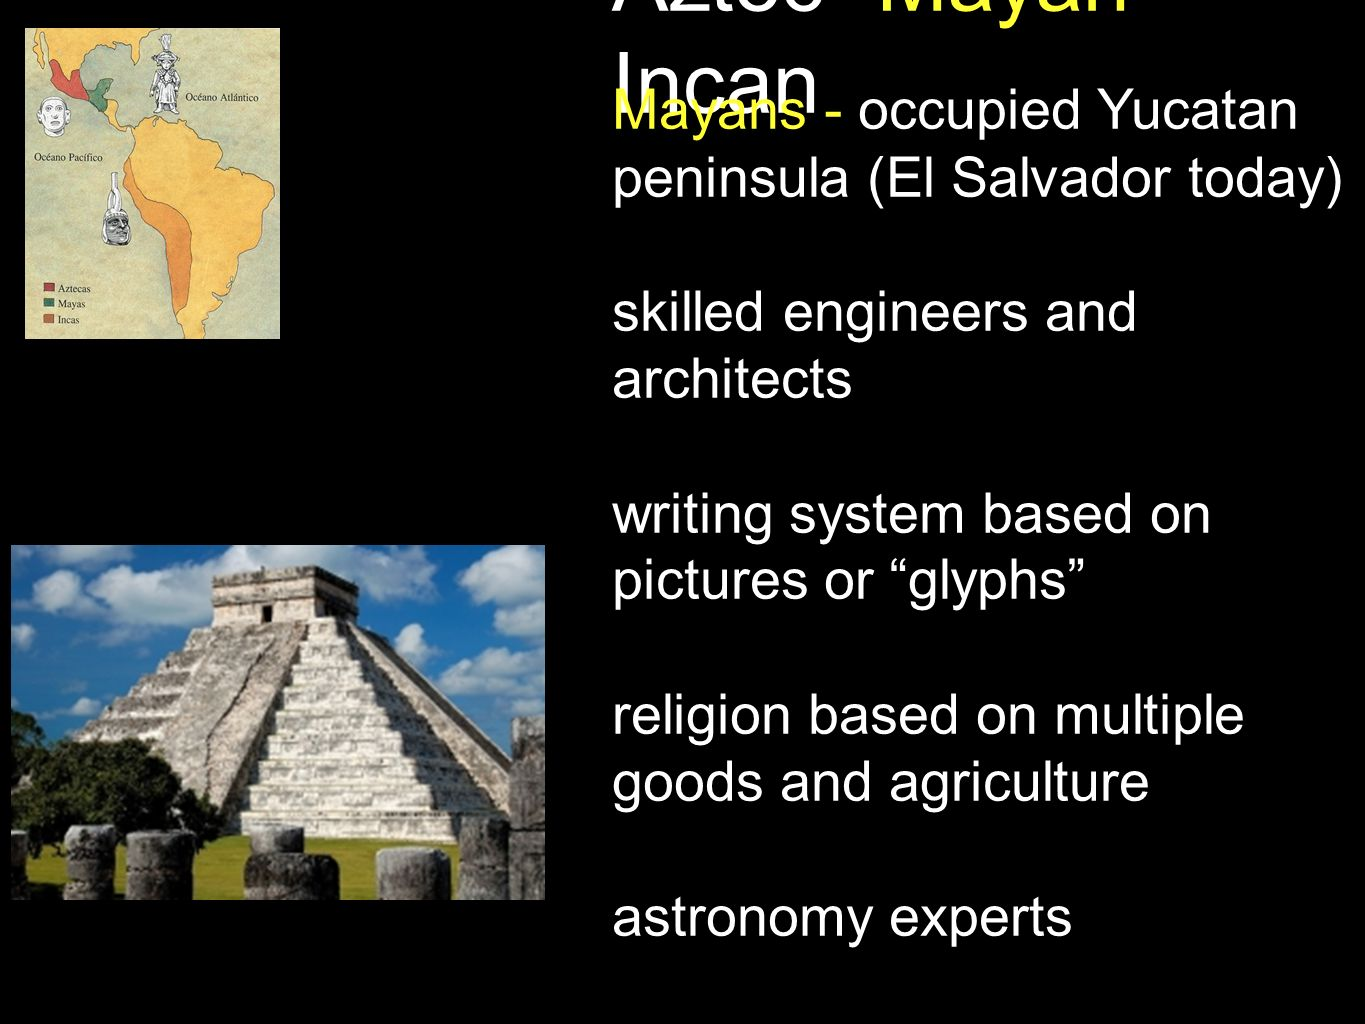 Aztec -Mayan- Incan Mayans - occupied Yucatan peninsula (El Salvador today) skilled engineers and architects writing system based on pictures or glyph